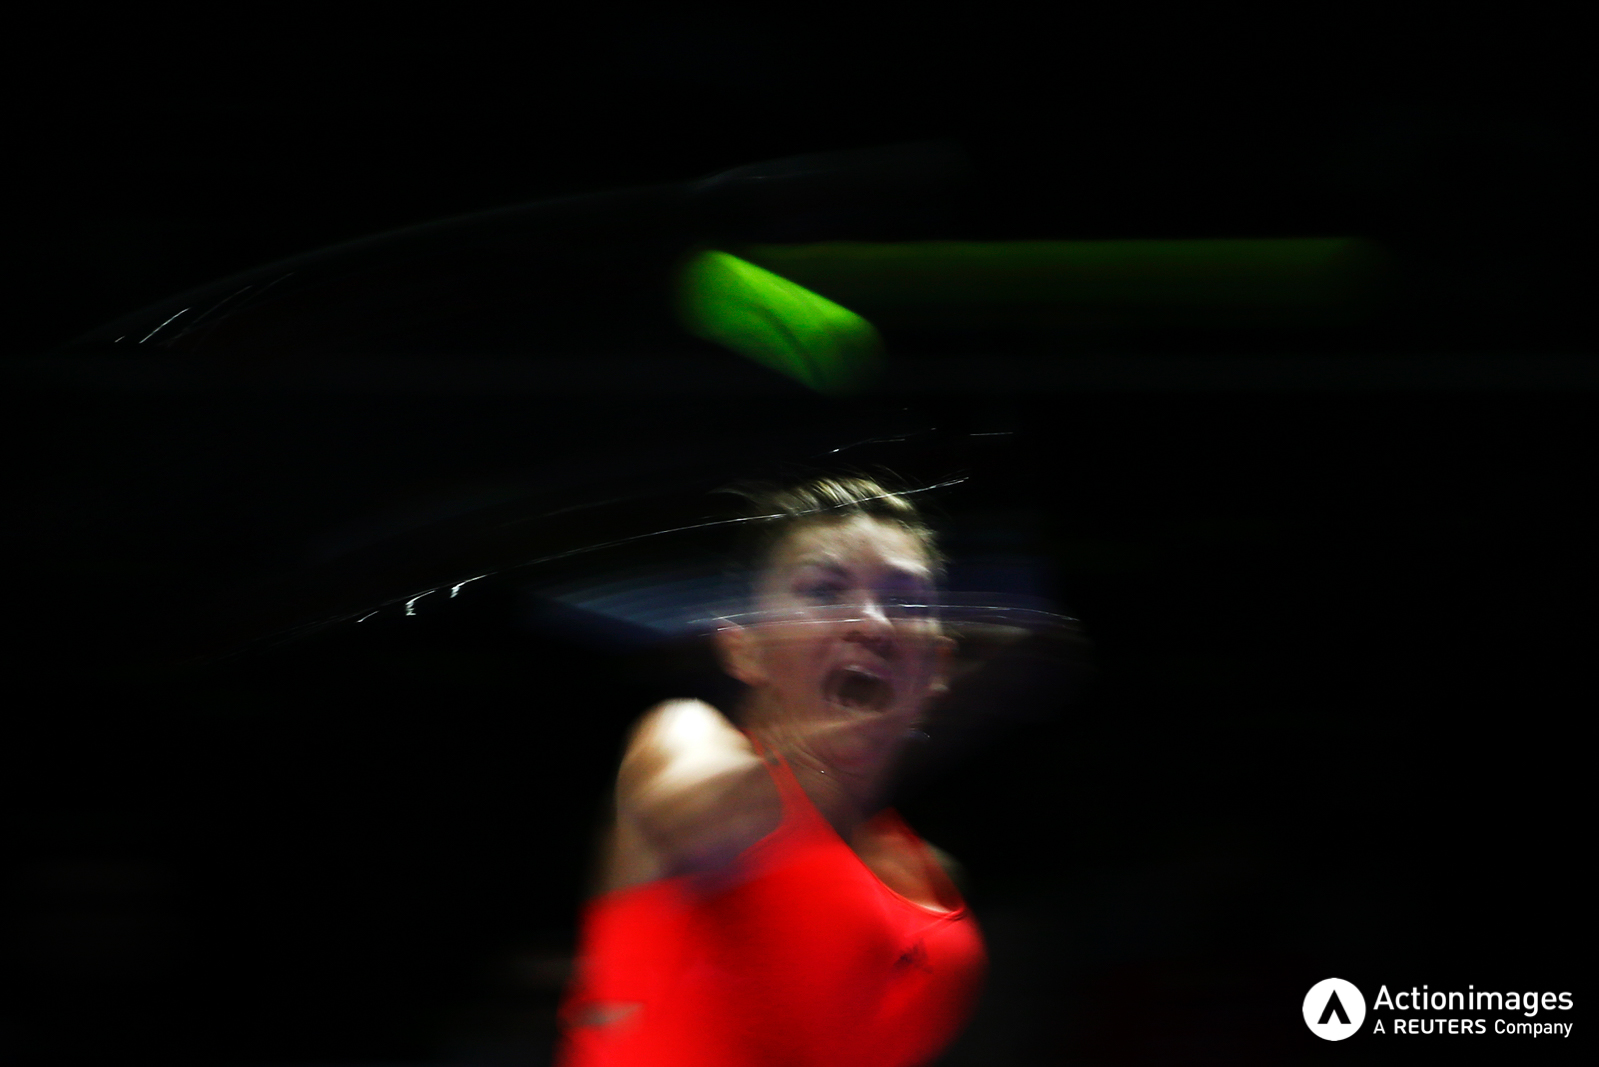 Tennis - BNP Paribas WTA Finals - Singapore Indoor Stadium - 25/10/16 Romania's Simona Halep in action during her round robin match Mandatory Credit: Action Images / Yong Teck Lim Livepic